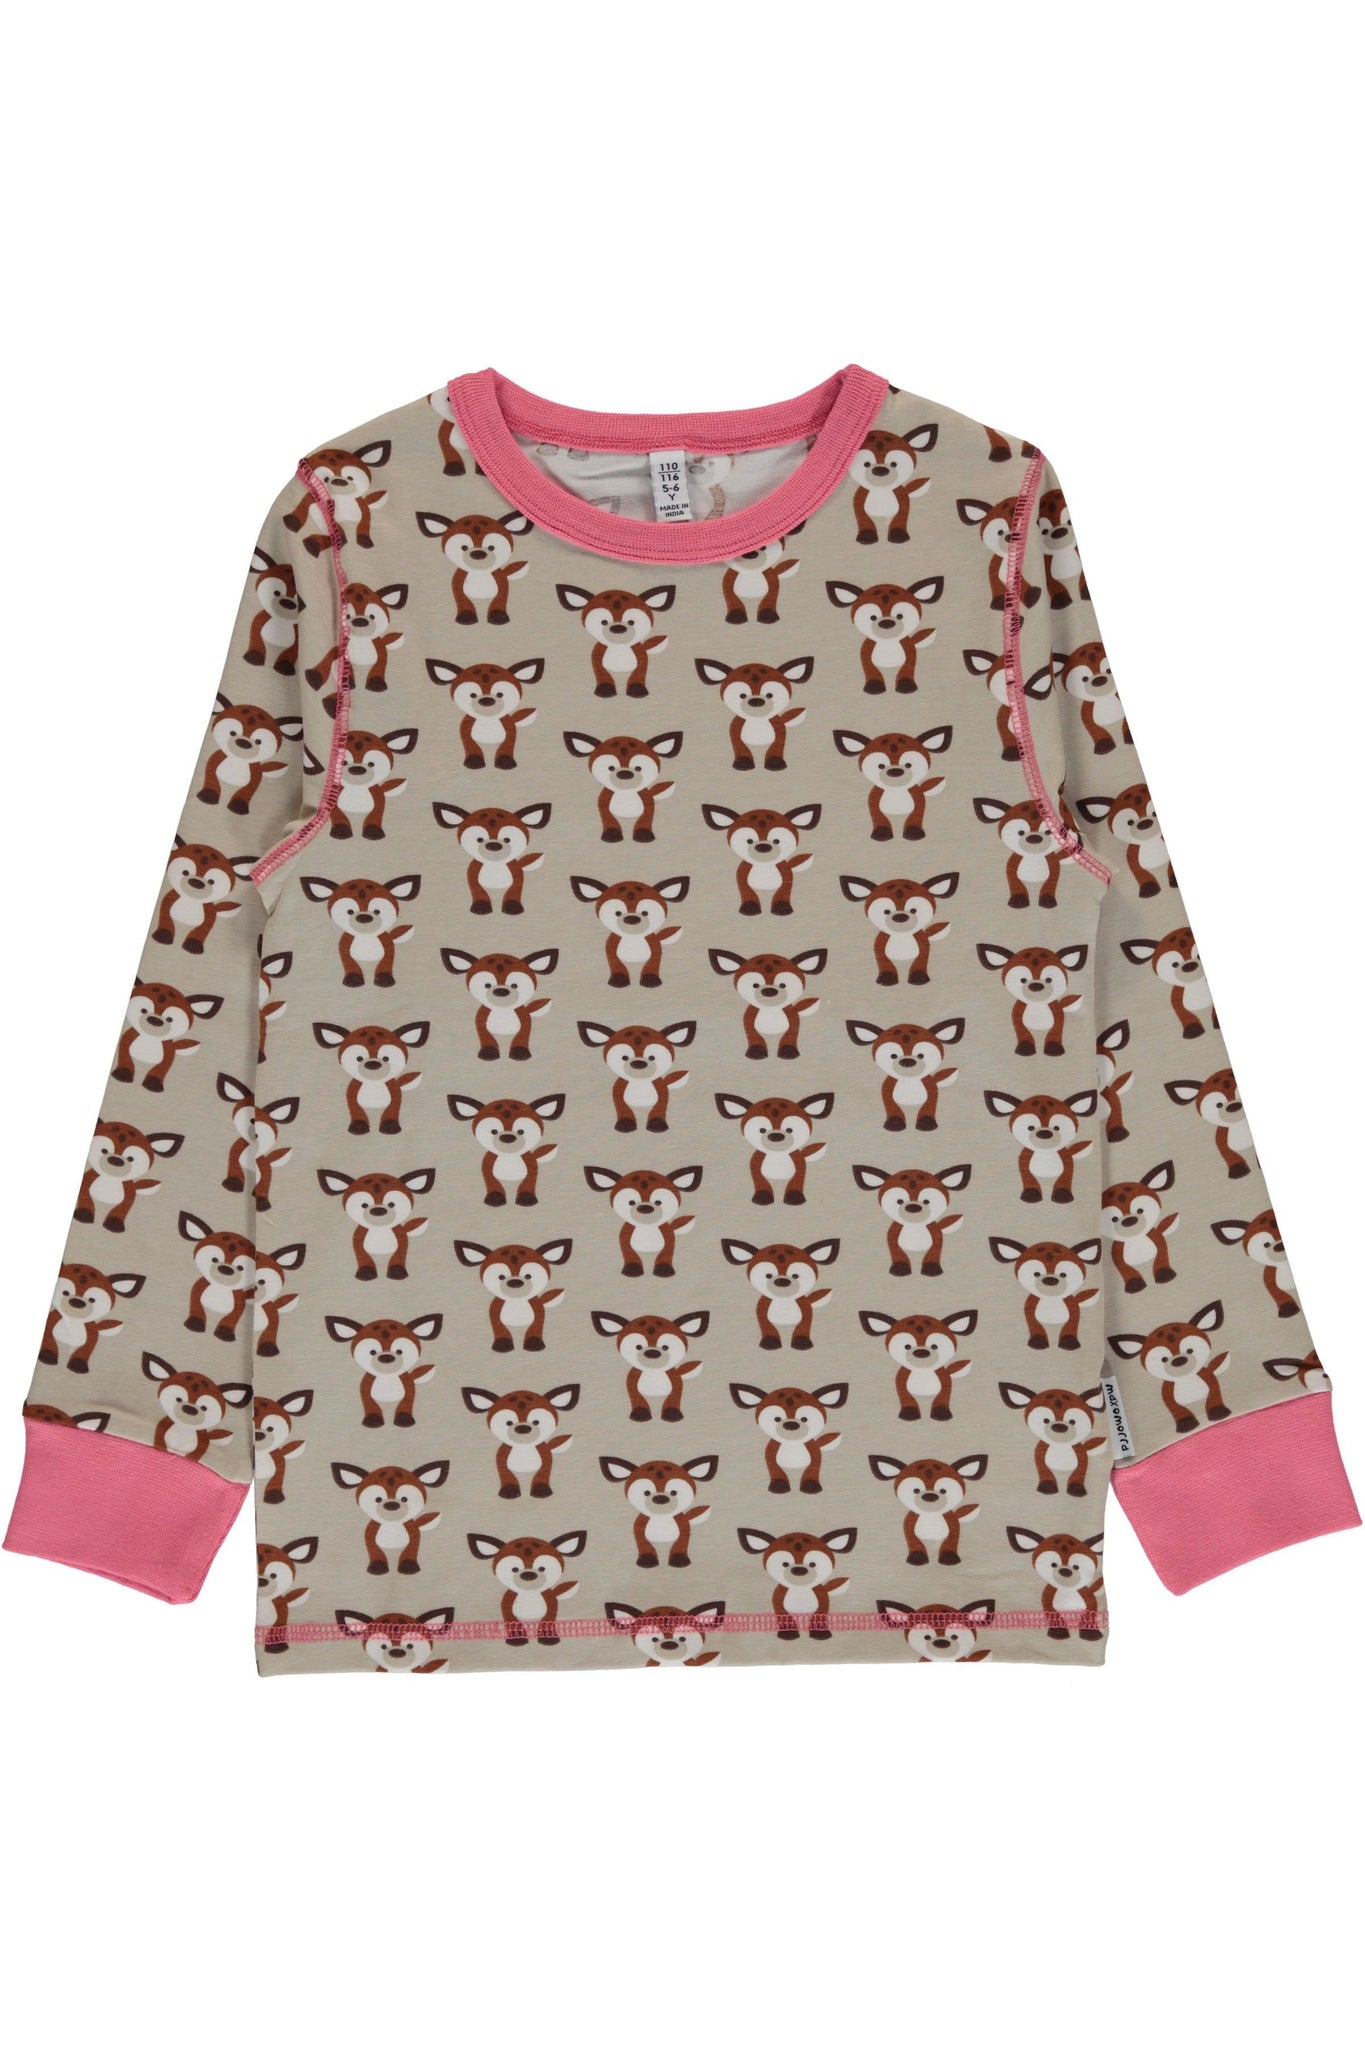 Fawn - Long - Sleeve - Top - Maxomorra Fashion - Snugglefox